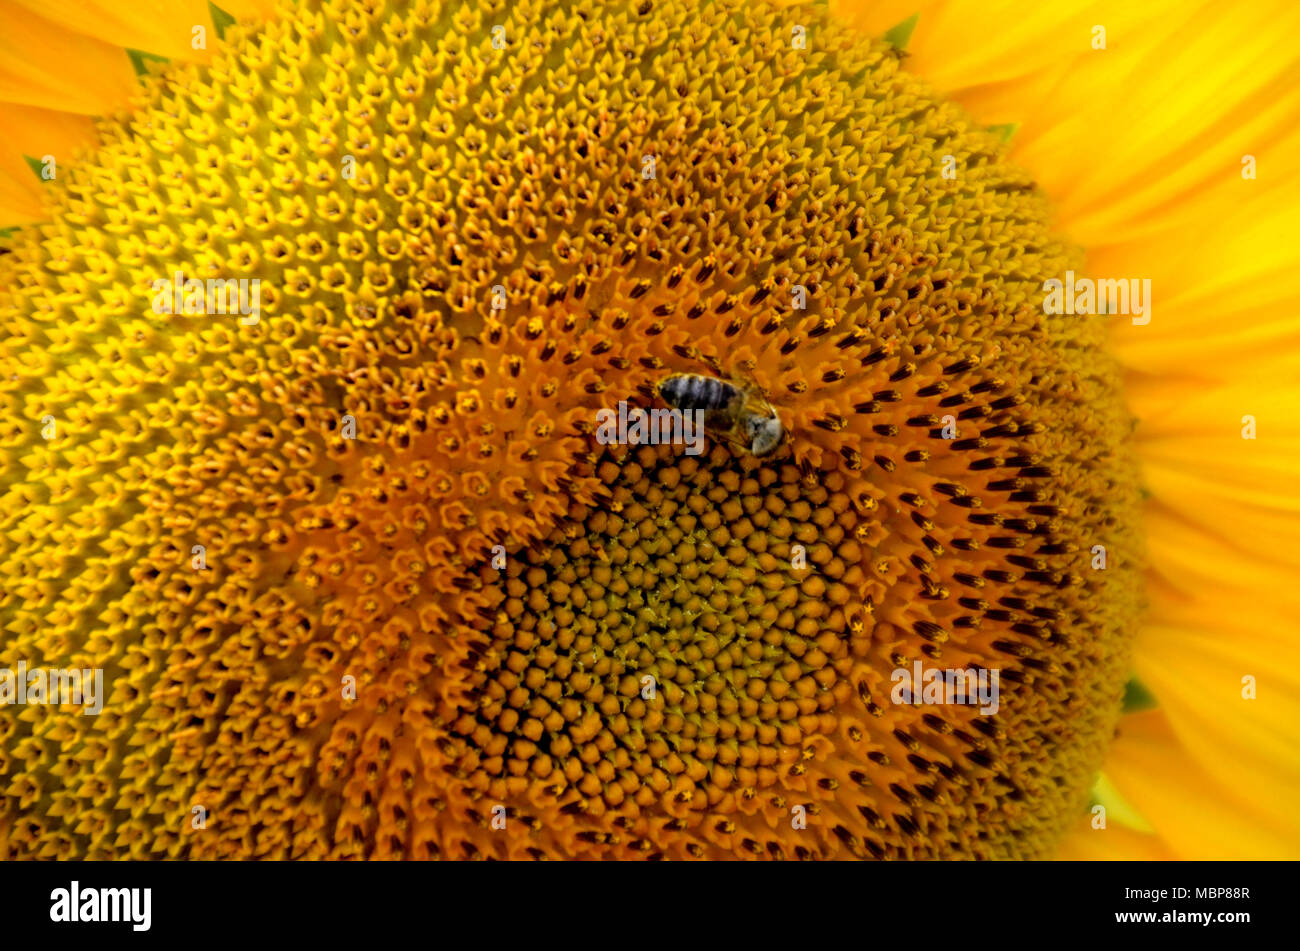 close up of a big yellow sunflower with a bee and petals, can be used as texture or background - Stock Image